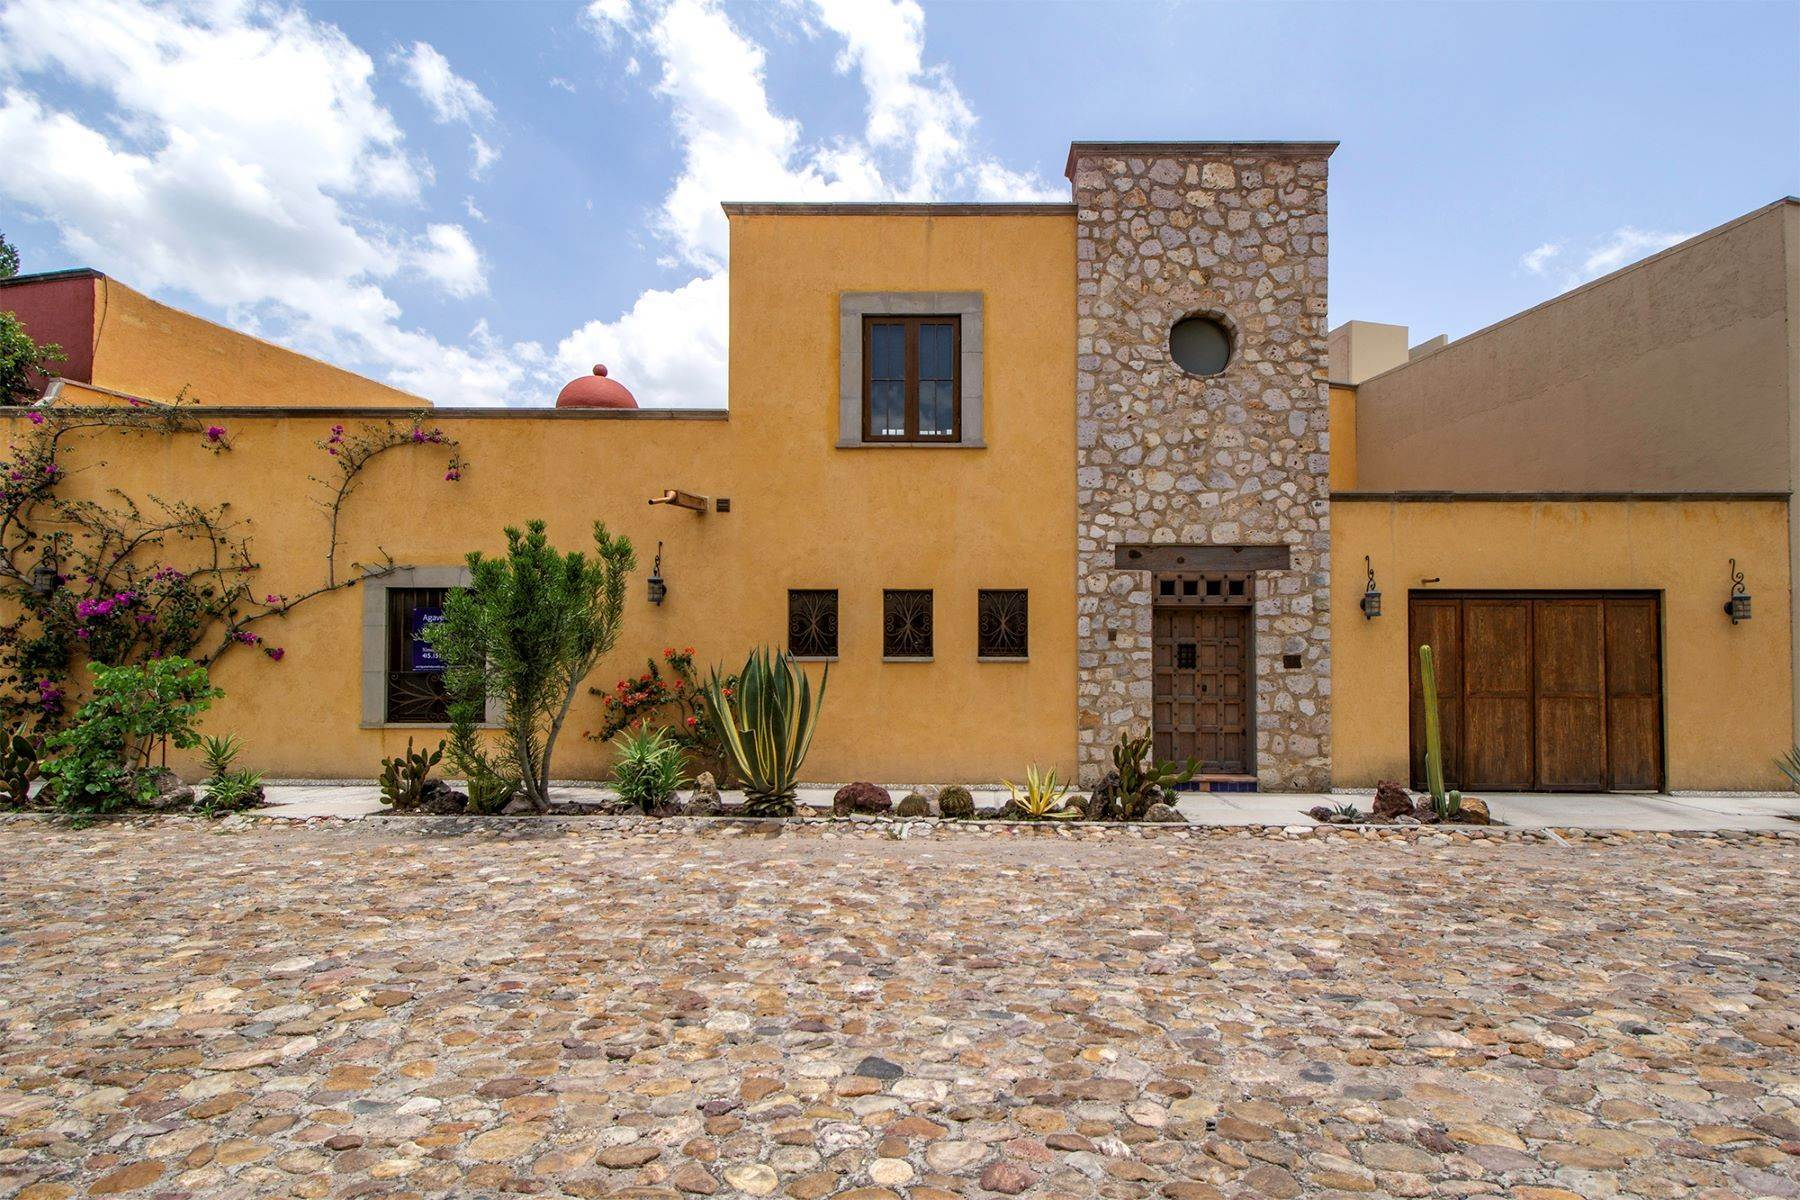 Single Family Homes for Sale at Casa San Miguel San Miguel 11 San Miguel De Allende, Guanajuato 37774 Mexico